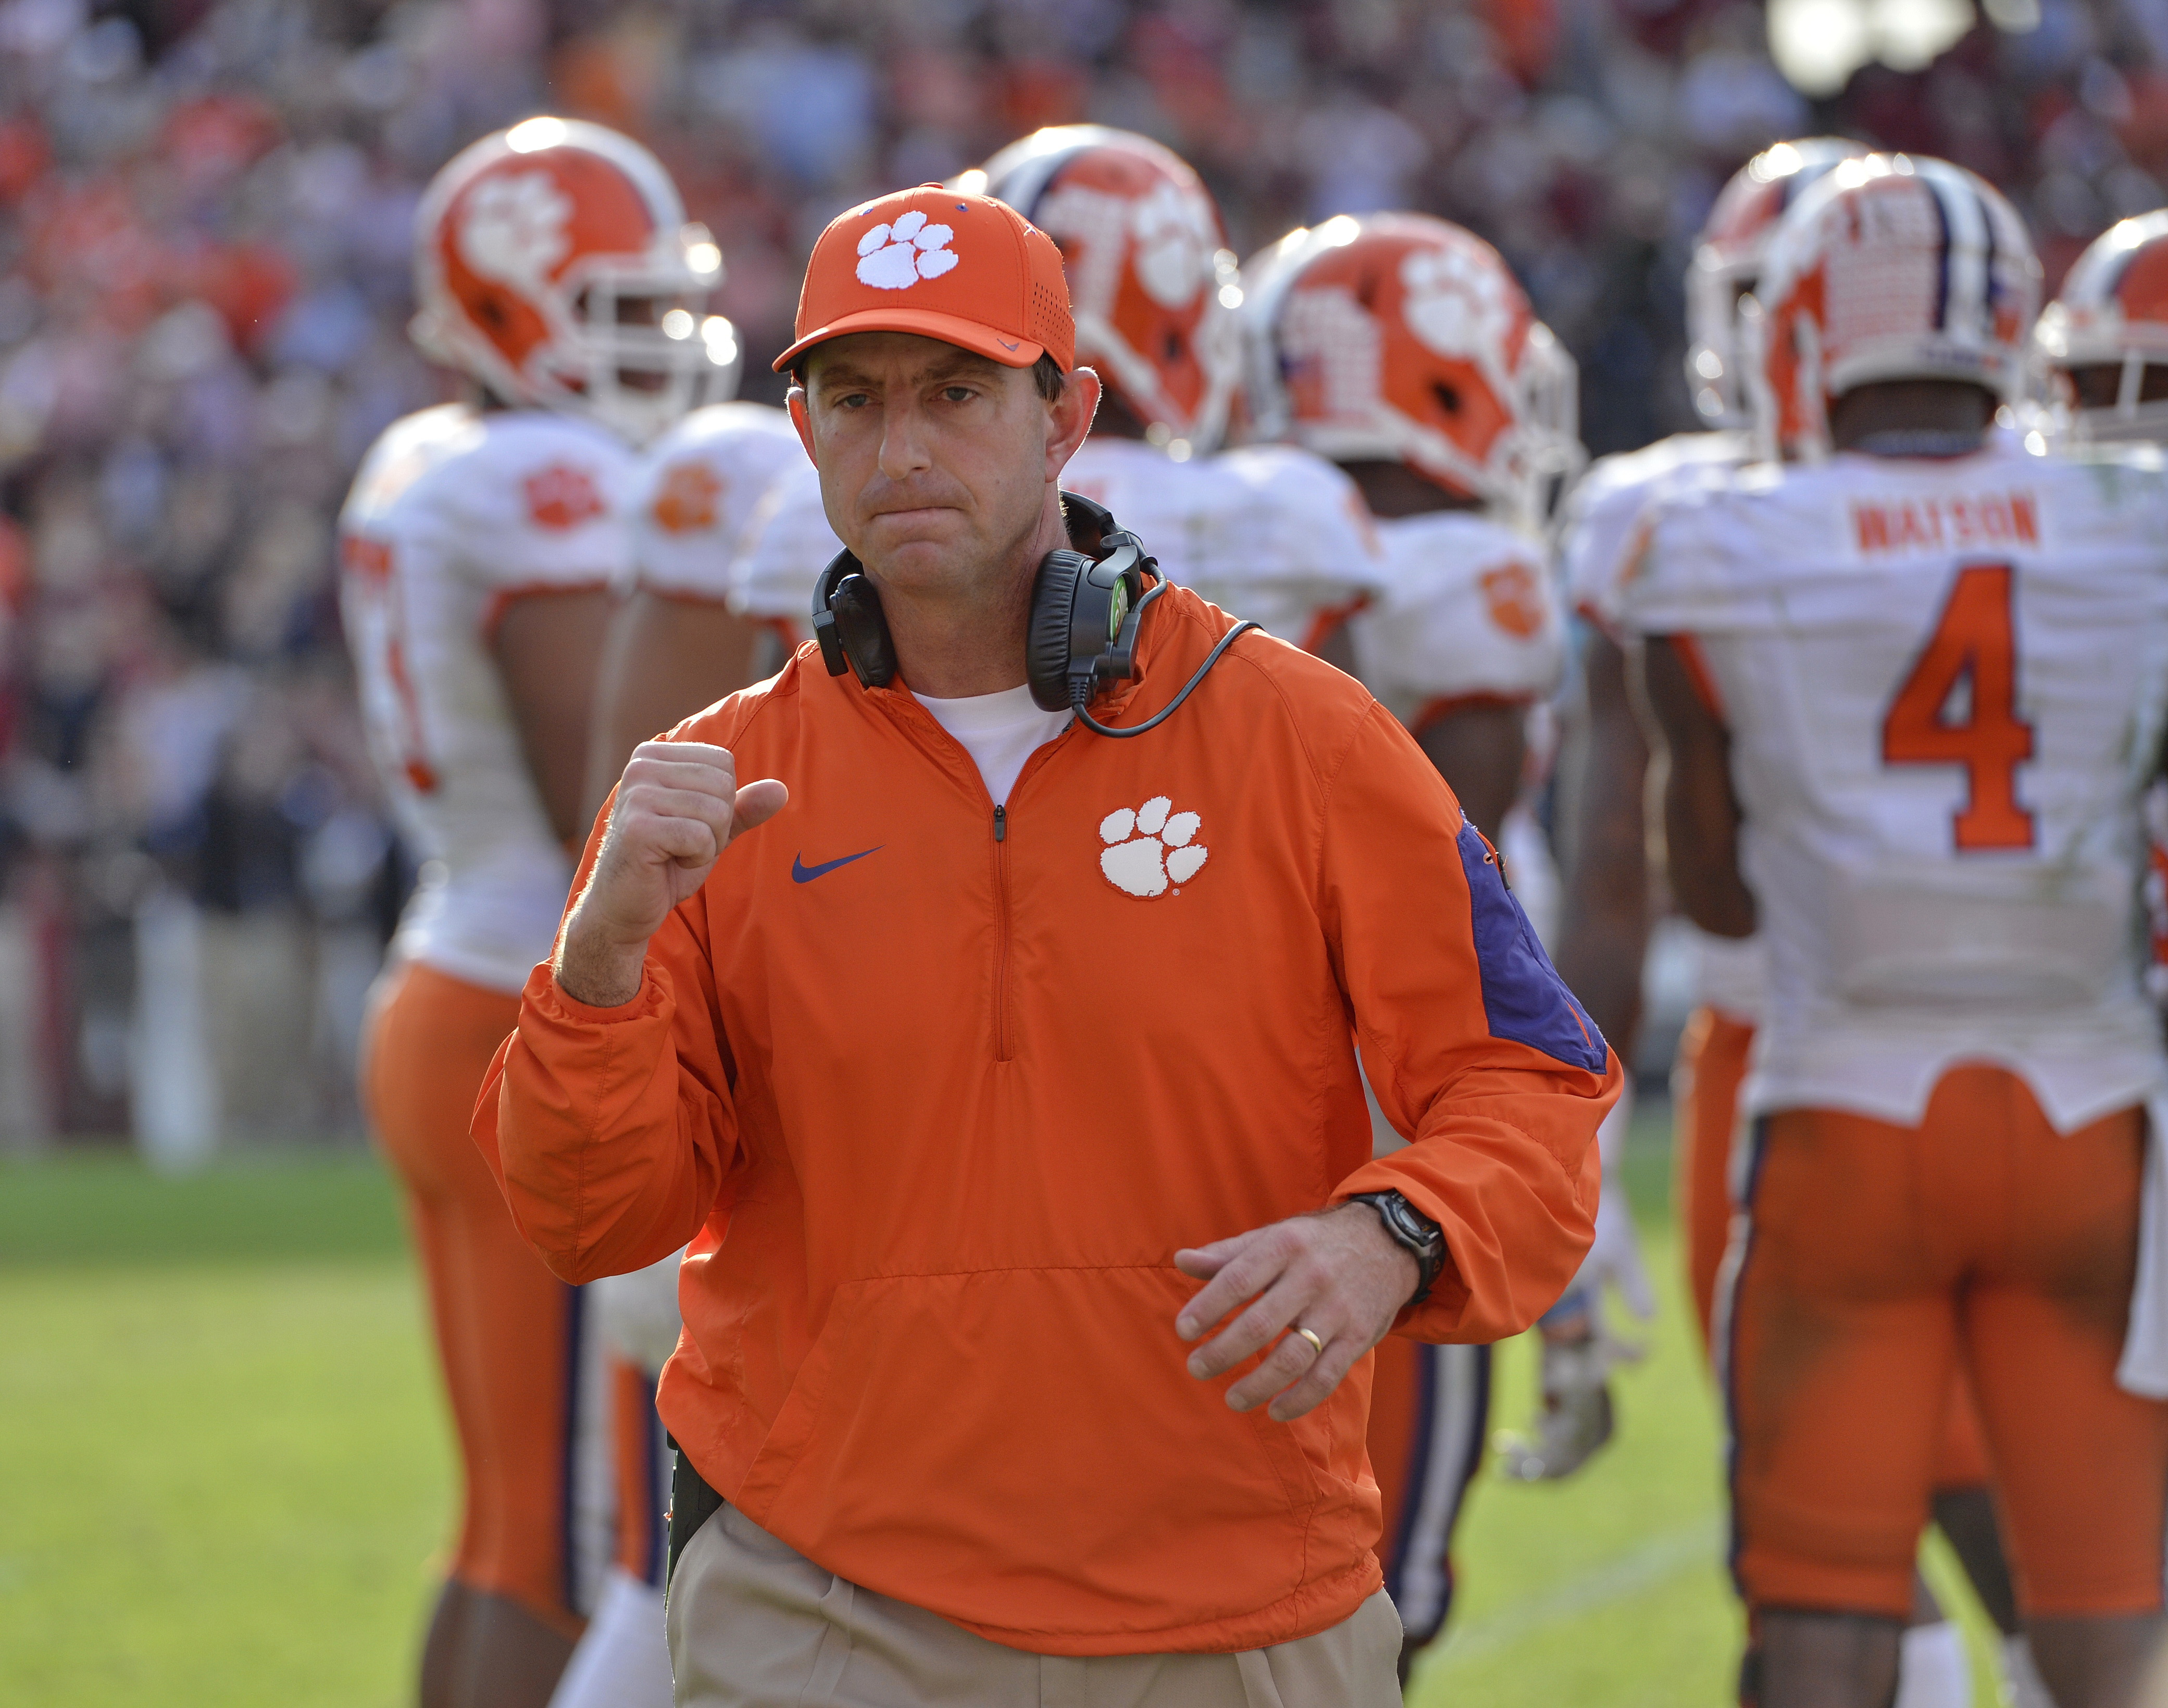 FILE - In this Nov. 28, 2015, file photo, Clemson head coach Dabo Swinney reacts in the closing minutes of an NCAA college football game against South Carolina in Columbia, S.C. Swinney grew up in near Birmingham, and like so many boys his age, dreamed of